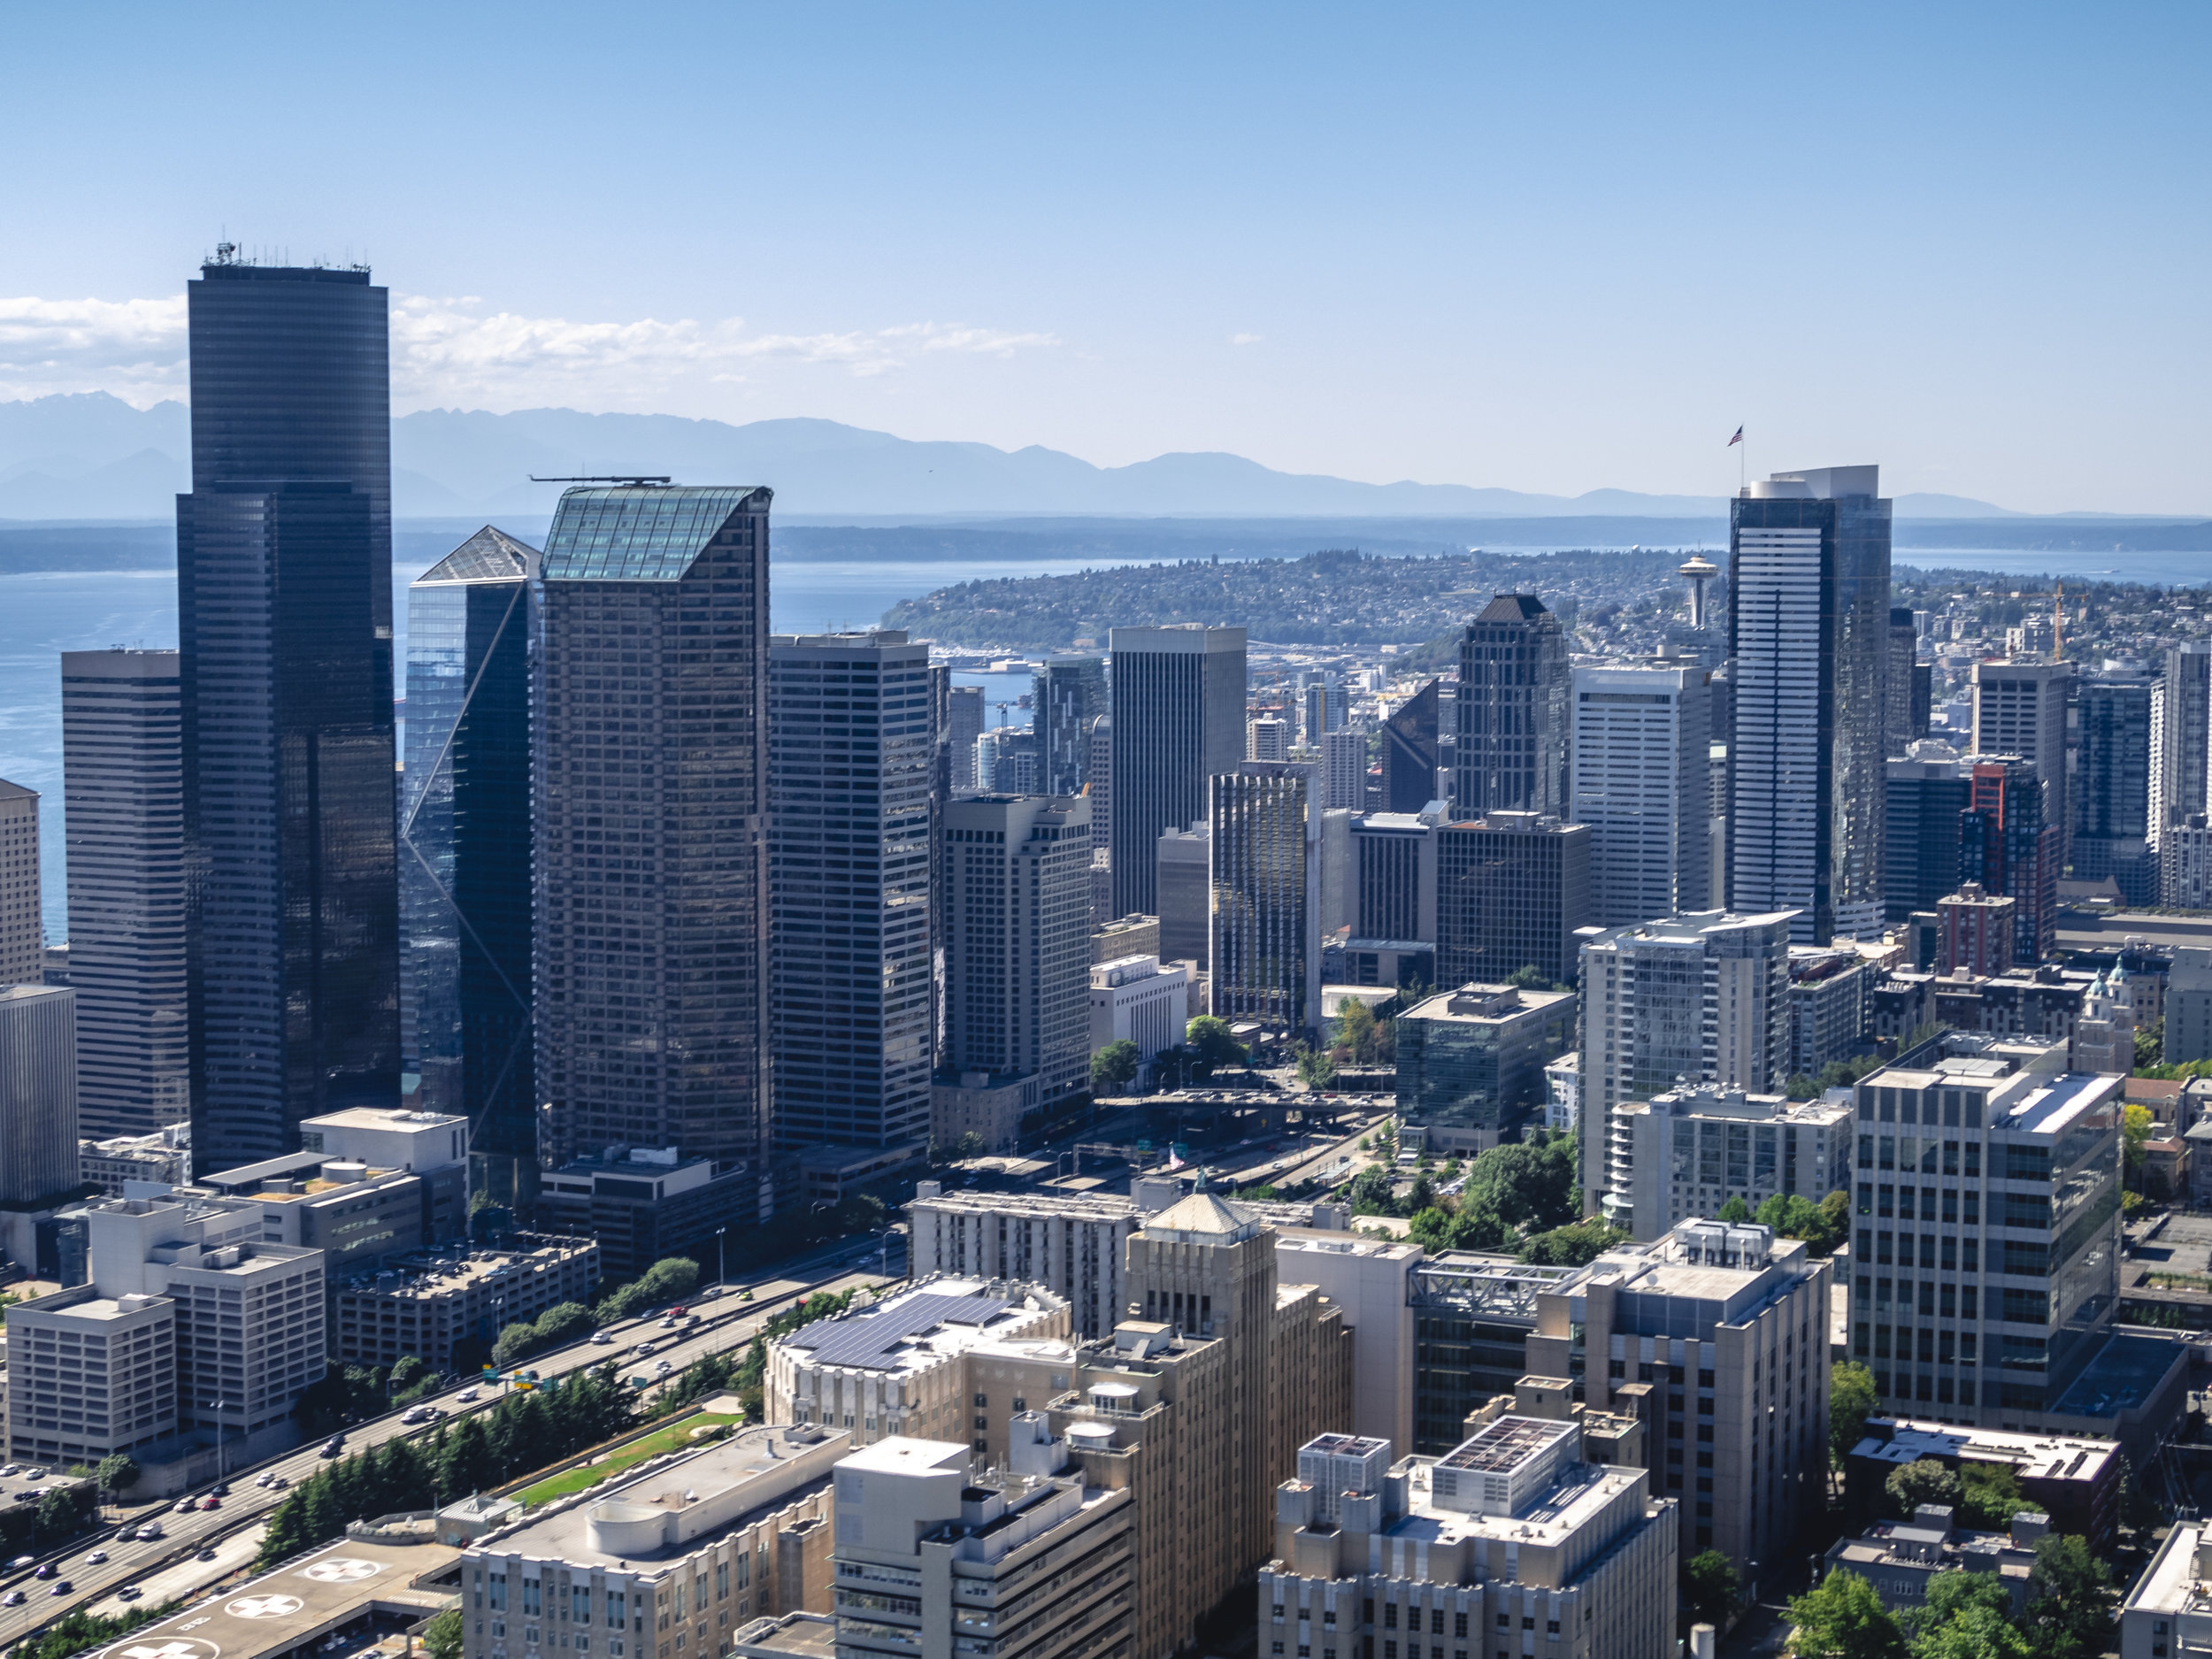 City_Skyscraper_Aerial_of_Seattle_Blue_Sky_Skyline.jpg